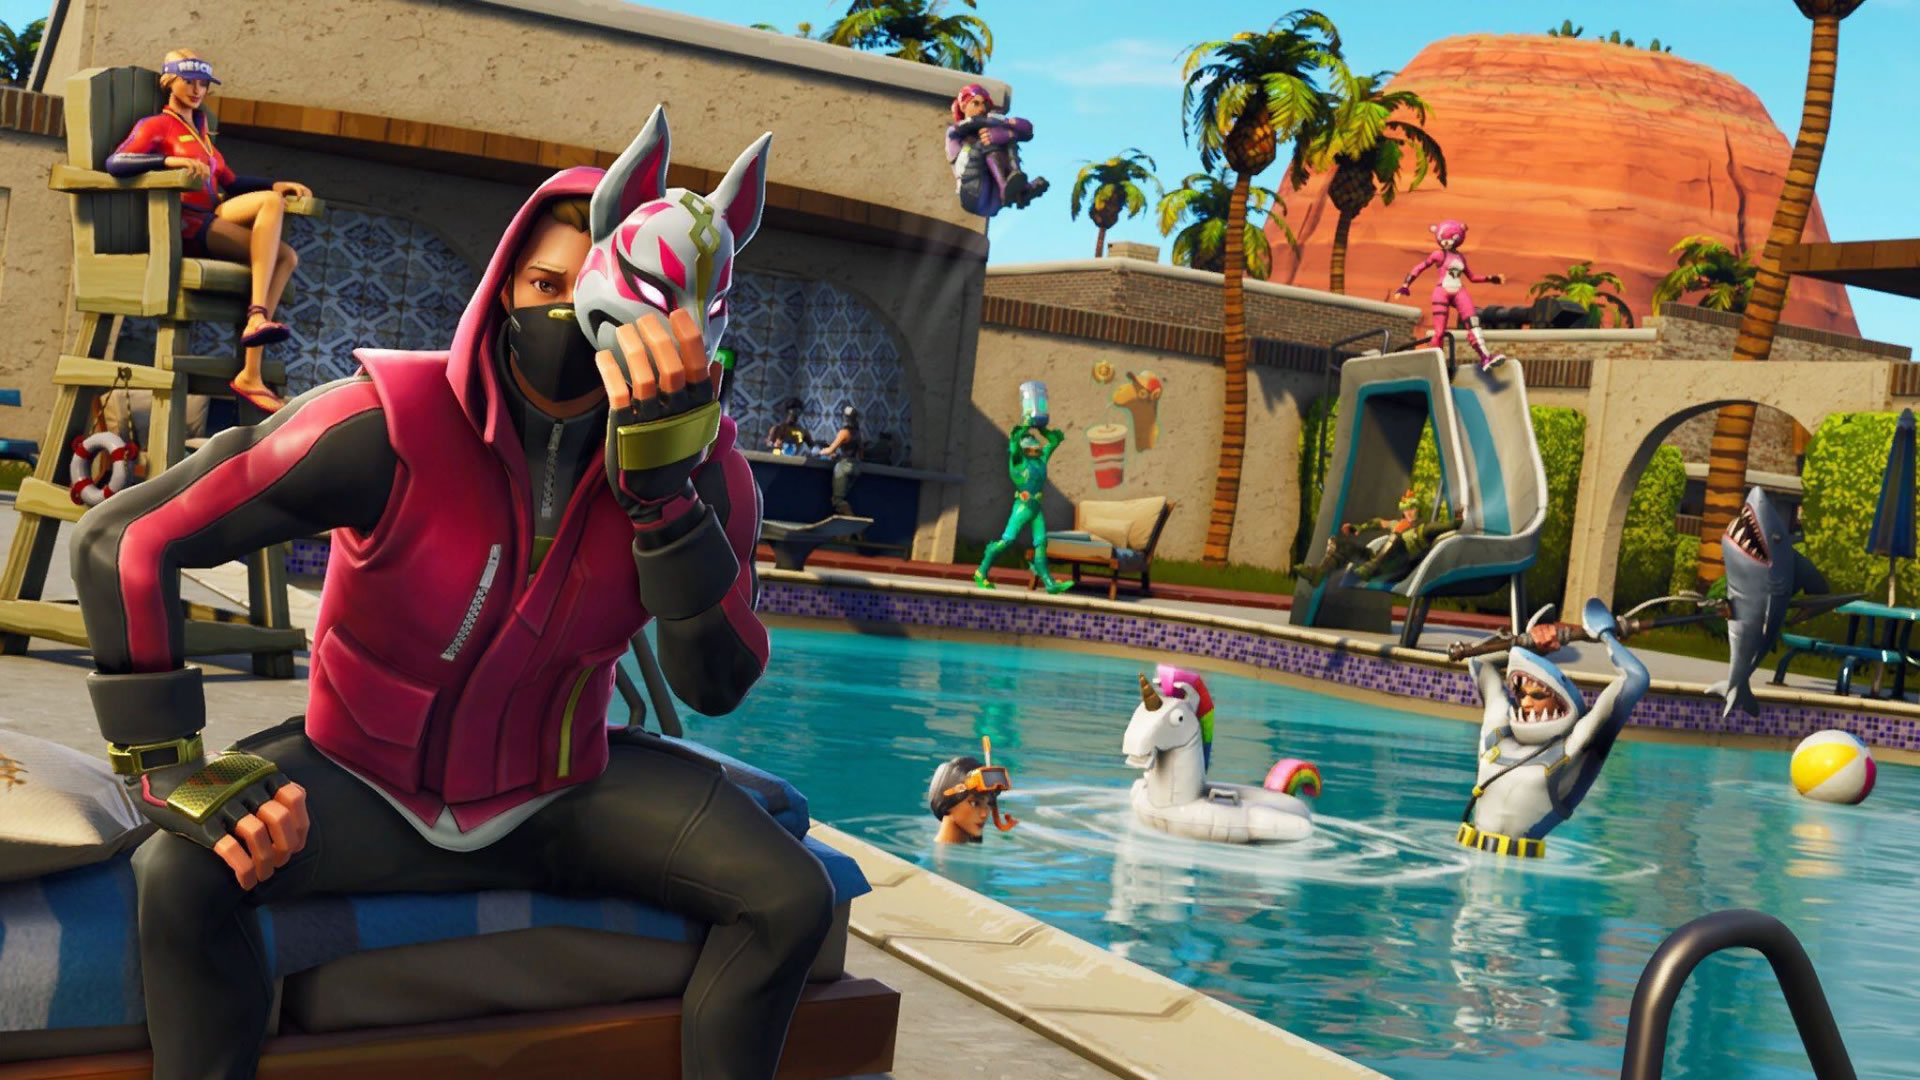 download wallpaper: Fortnite pool party – Masked Fury wallpaper